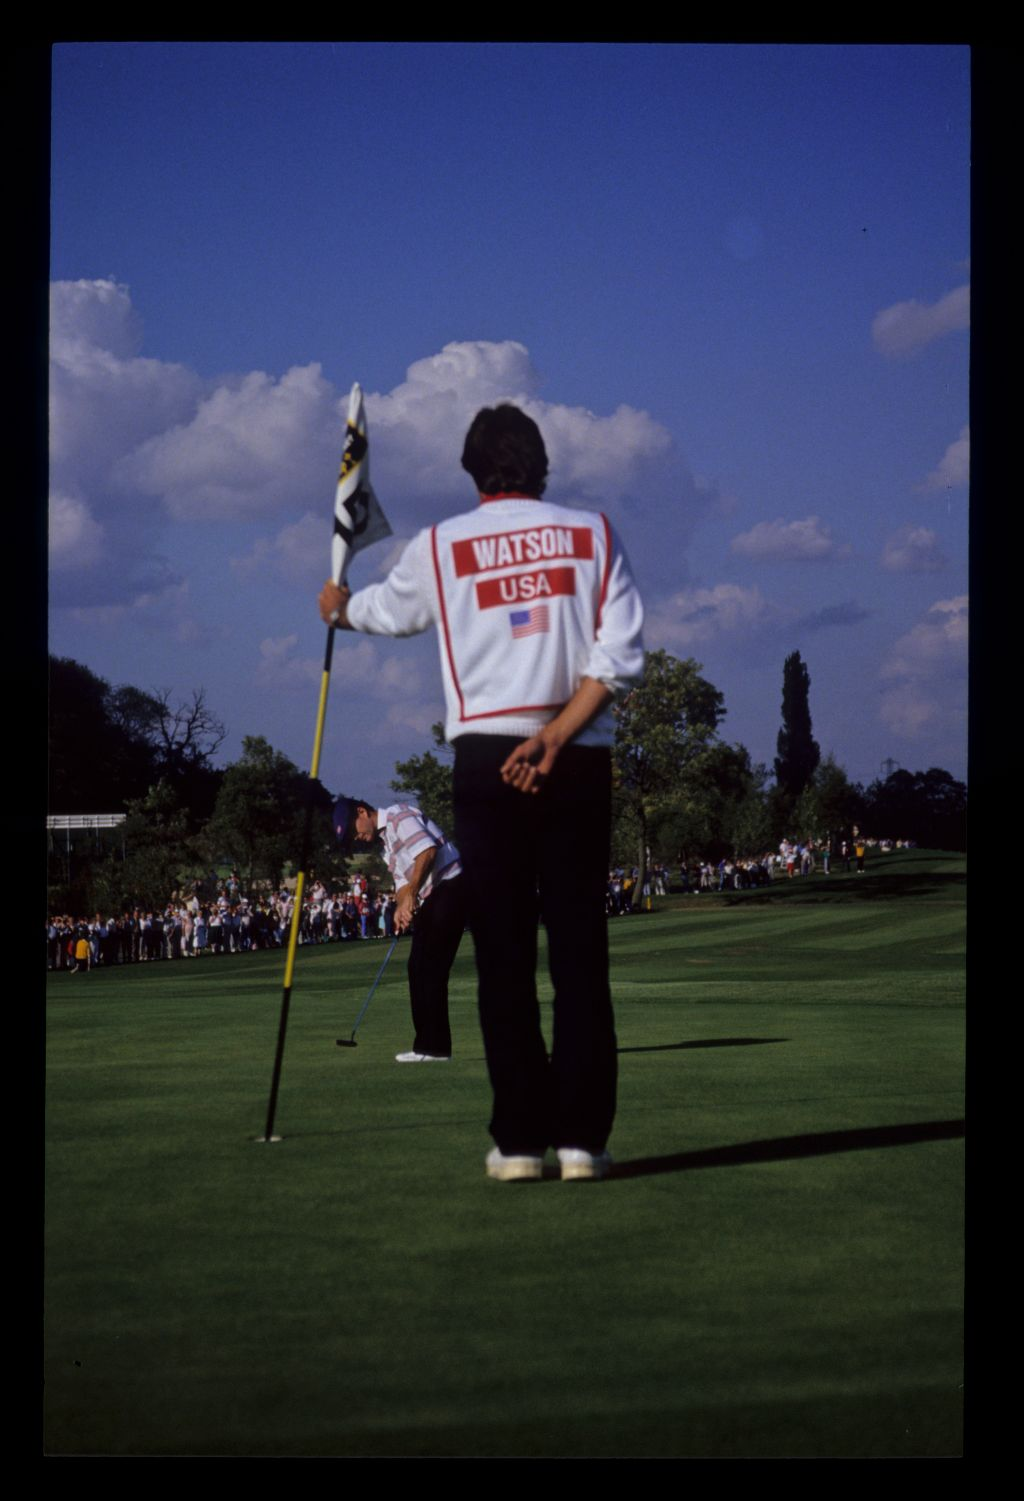 With caddie tending the flag, Tom Watson prepares to putt at the 1989 Ryder Cup